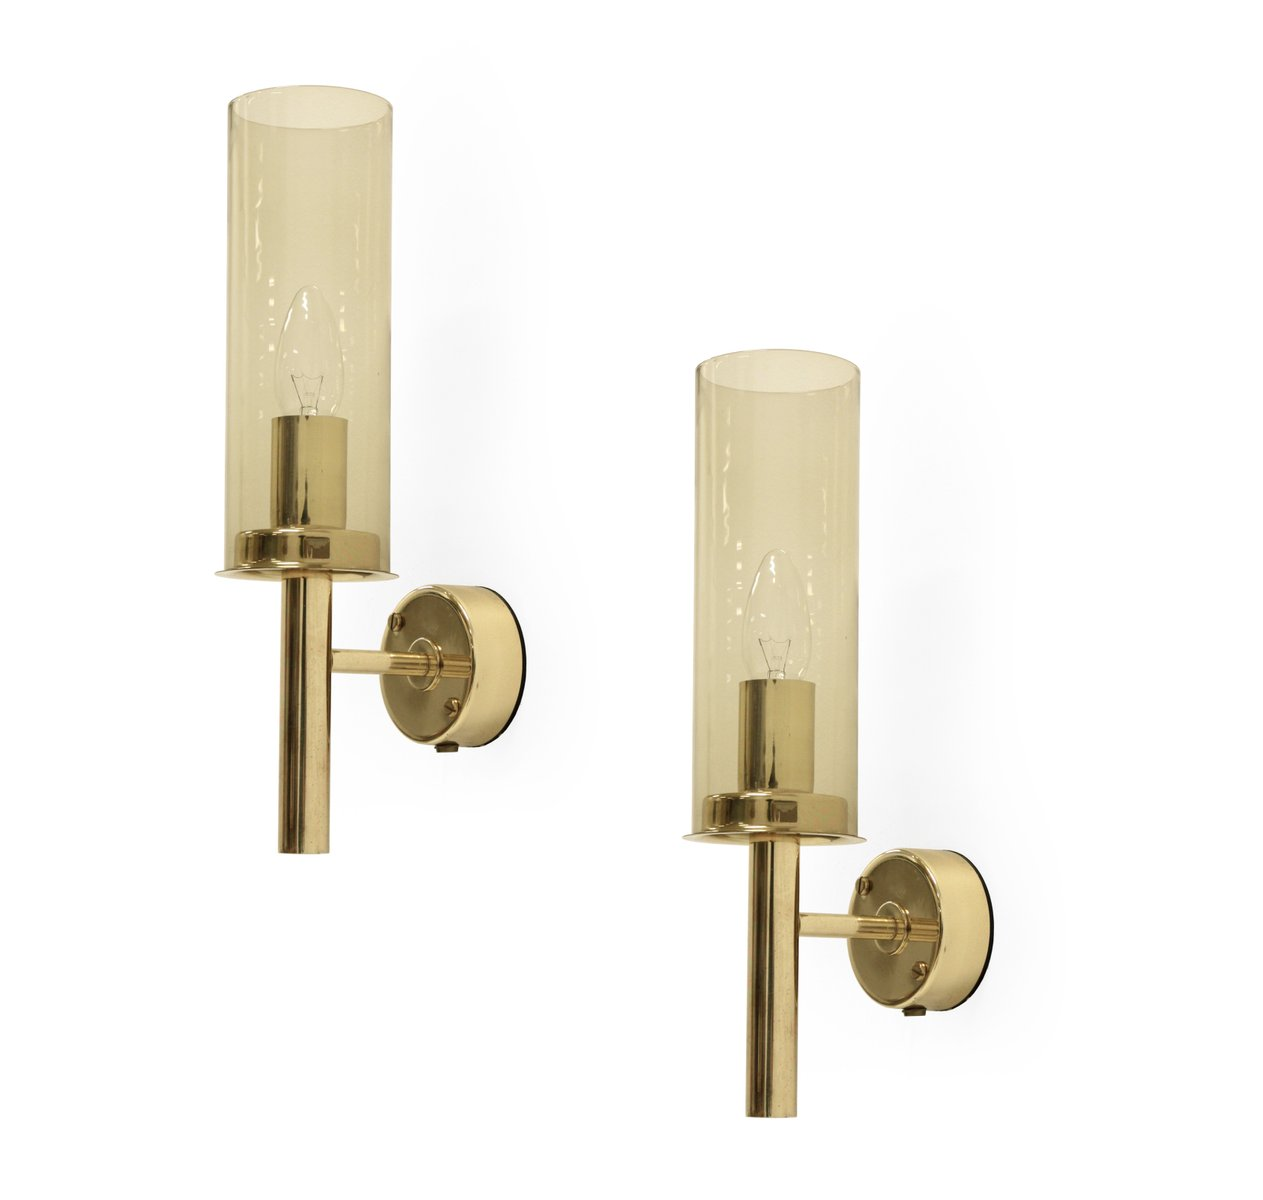 Model 16914 brass wall lights by hans agne jakobsson for ab model 16914 brass wall lights by hans agne jakobsson for ab markaryd 1960s set of 2 aloadofball Choice Image